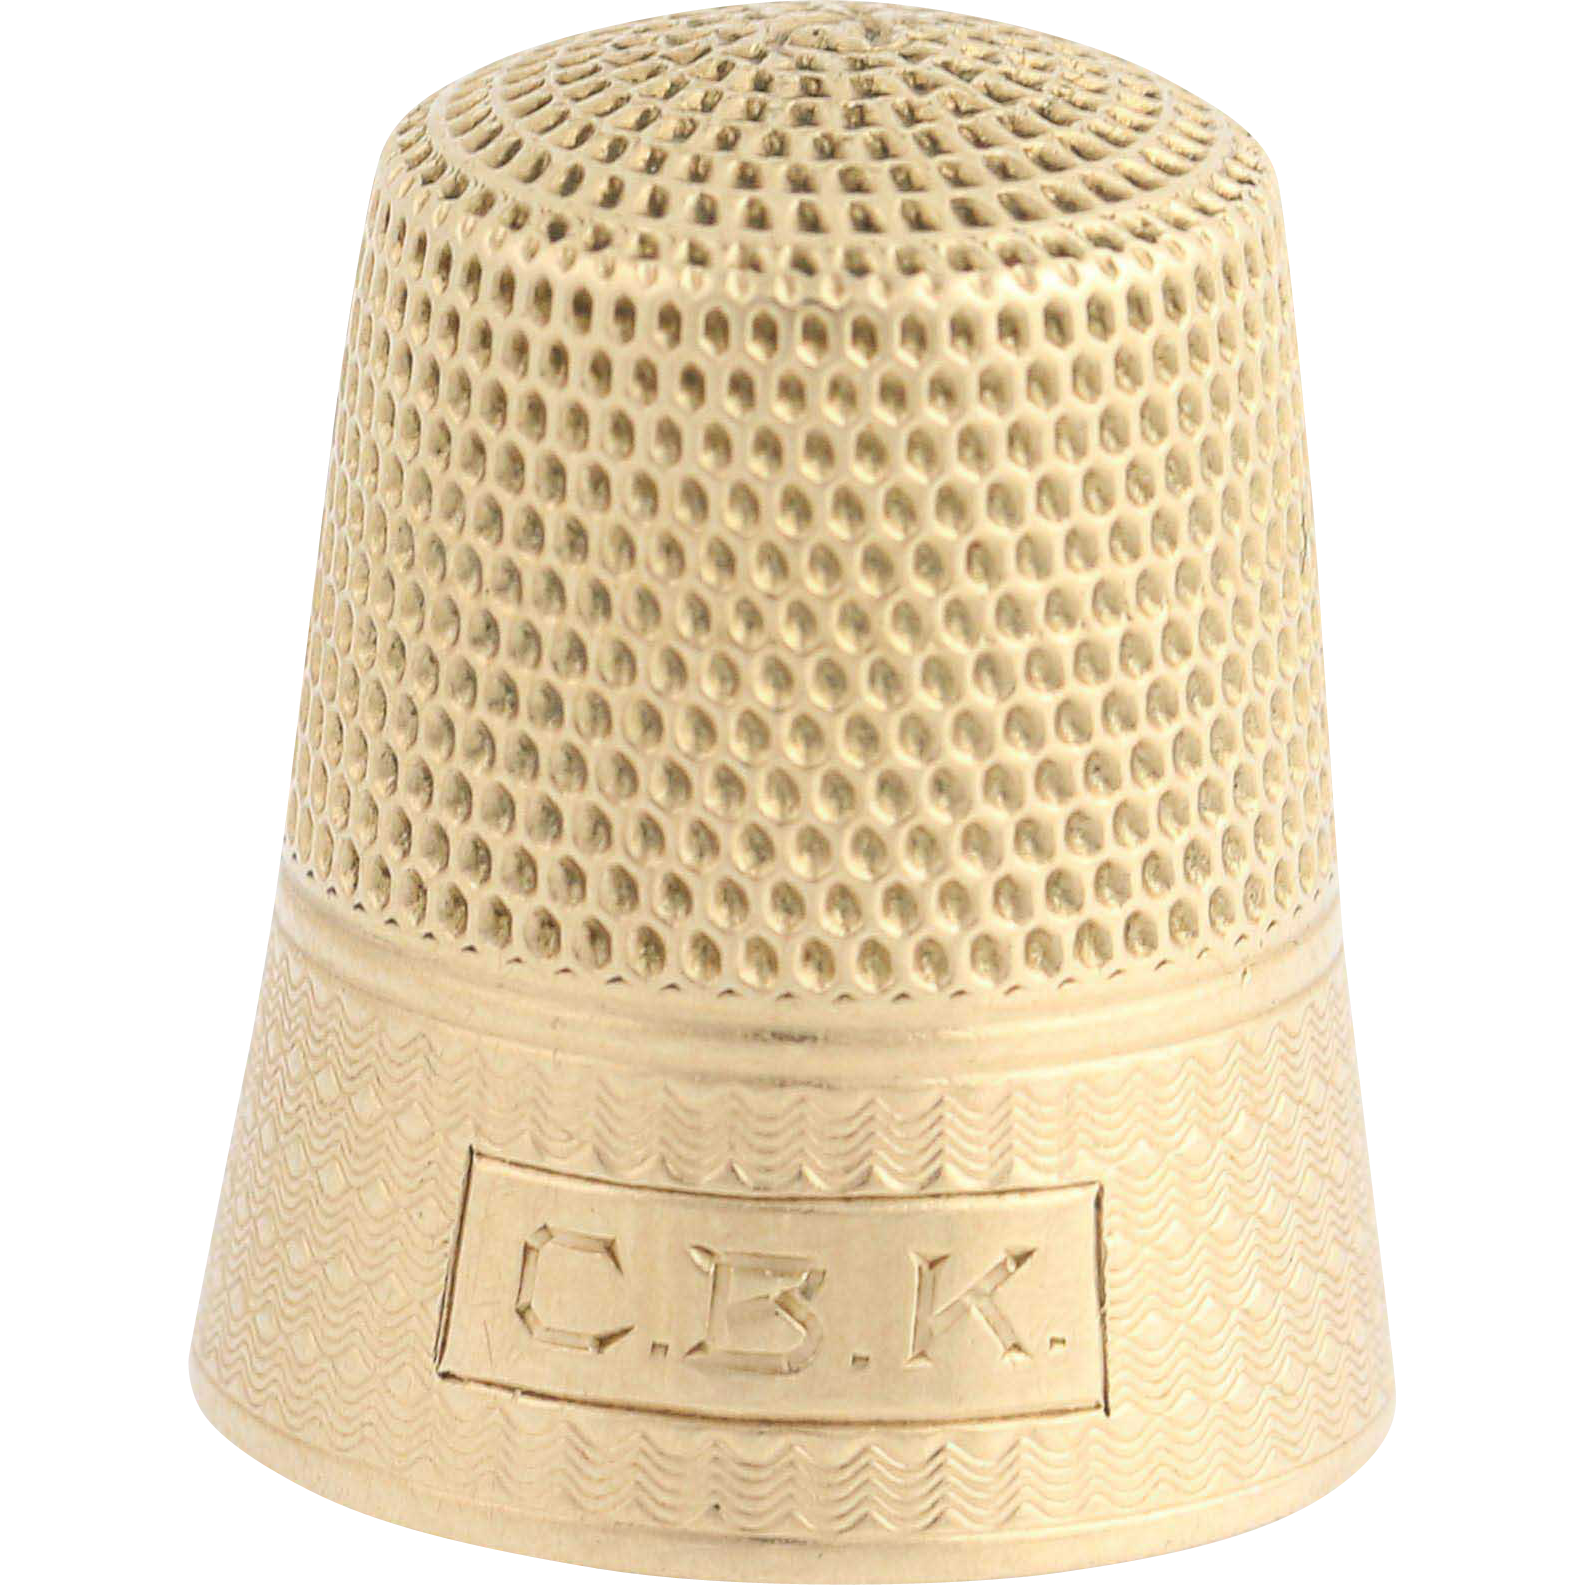 Vintage Thimble - 10k Yellow Gold Engraved Initials Sewing Accessory Size 10